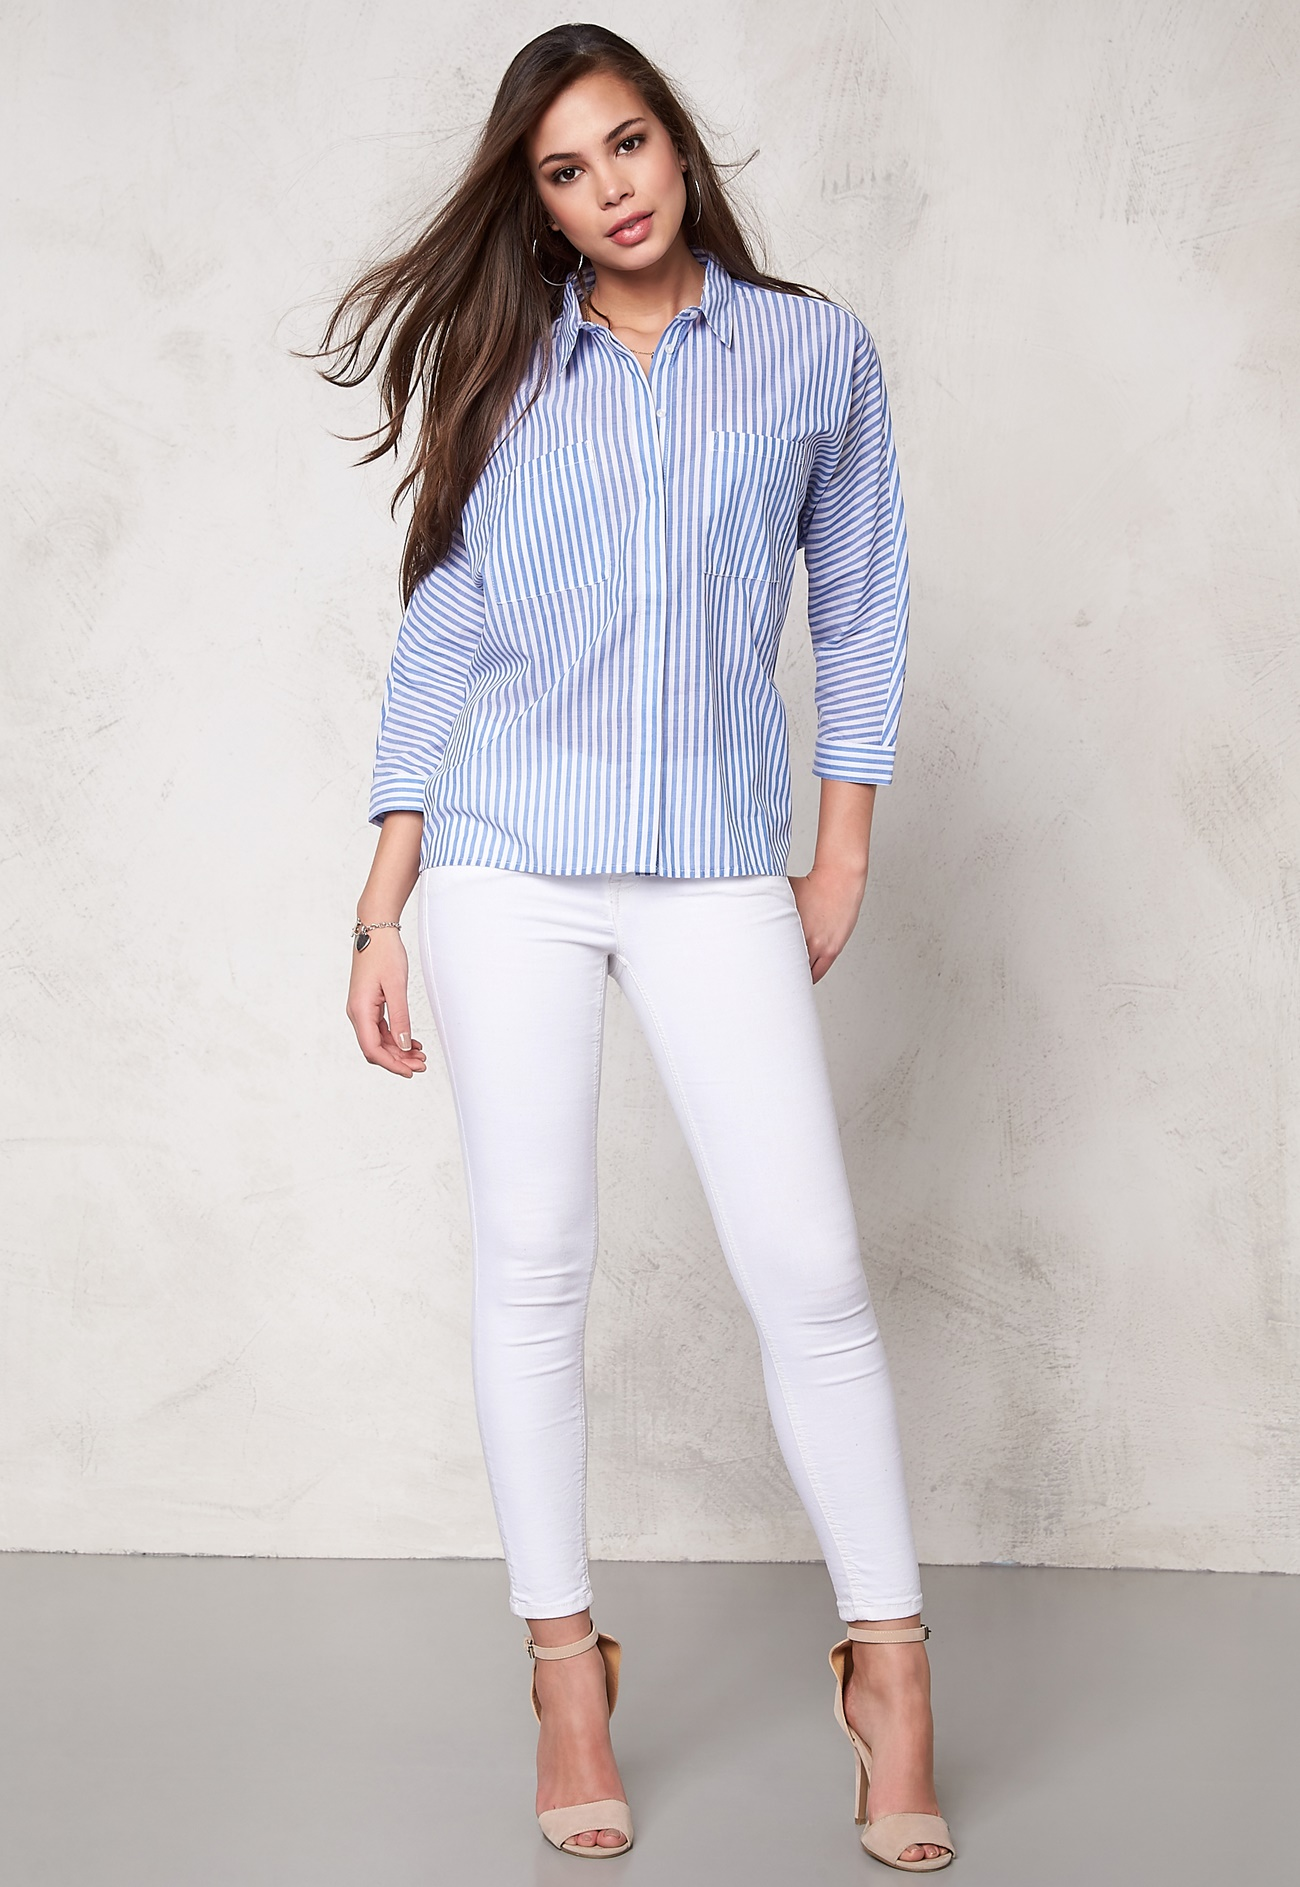 Soaked in luxury stay shirt blue and white bubbleroom for Luxury stays